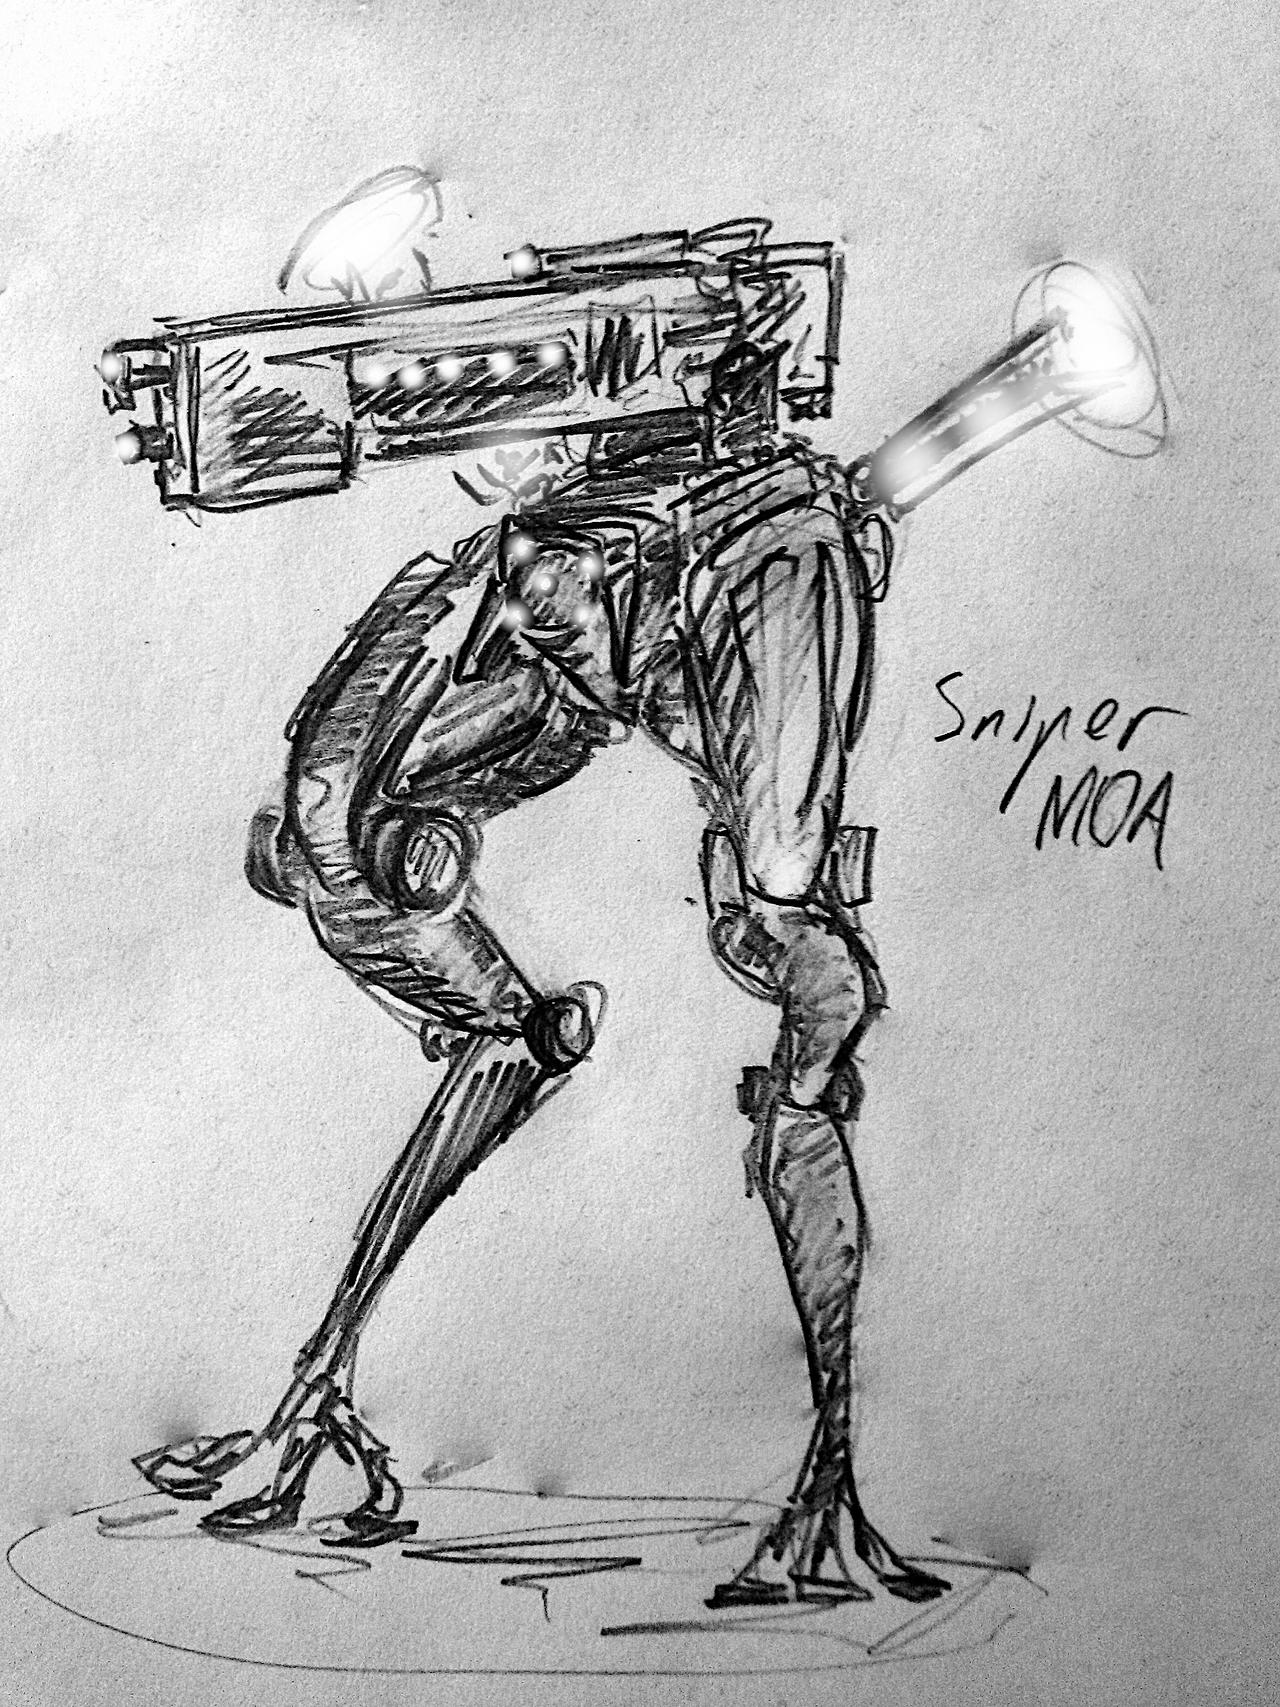 sniper_moa_proxy_by_huginthecrowda_ddb40